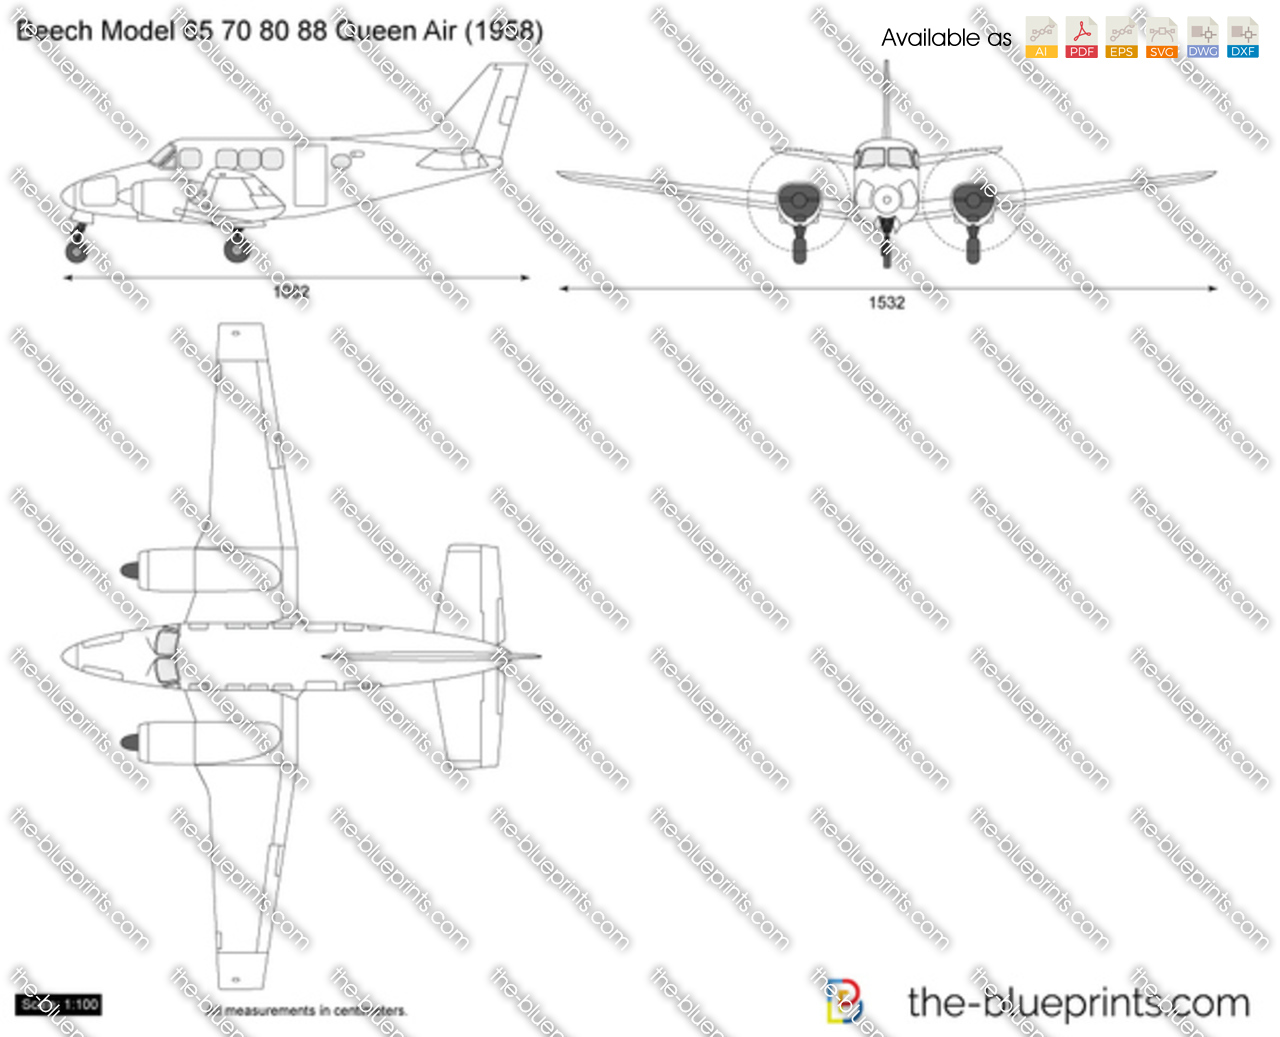 Beech Model 65 70 80 88 Queen Air